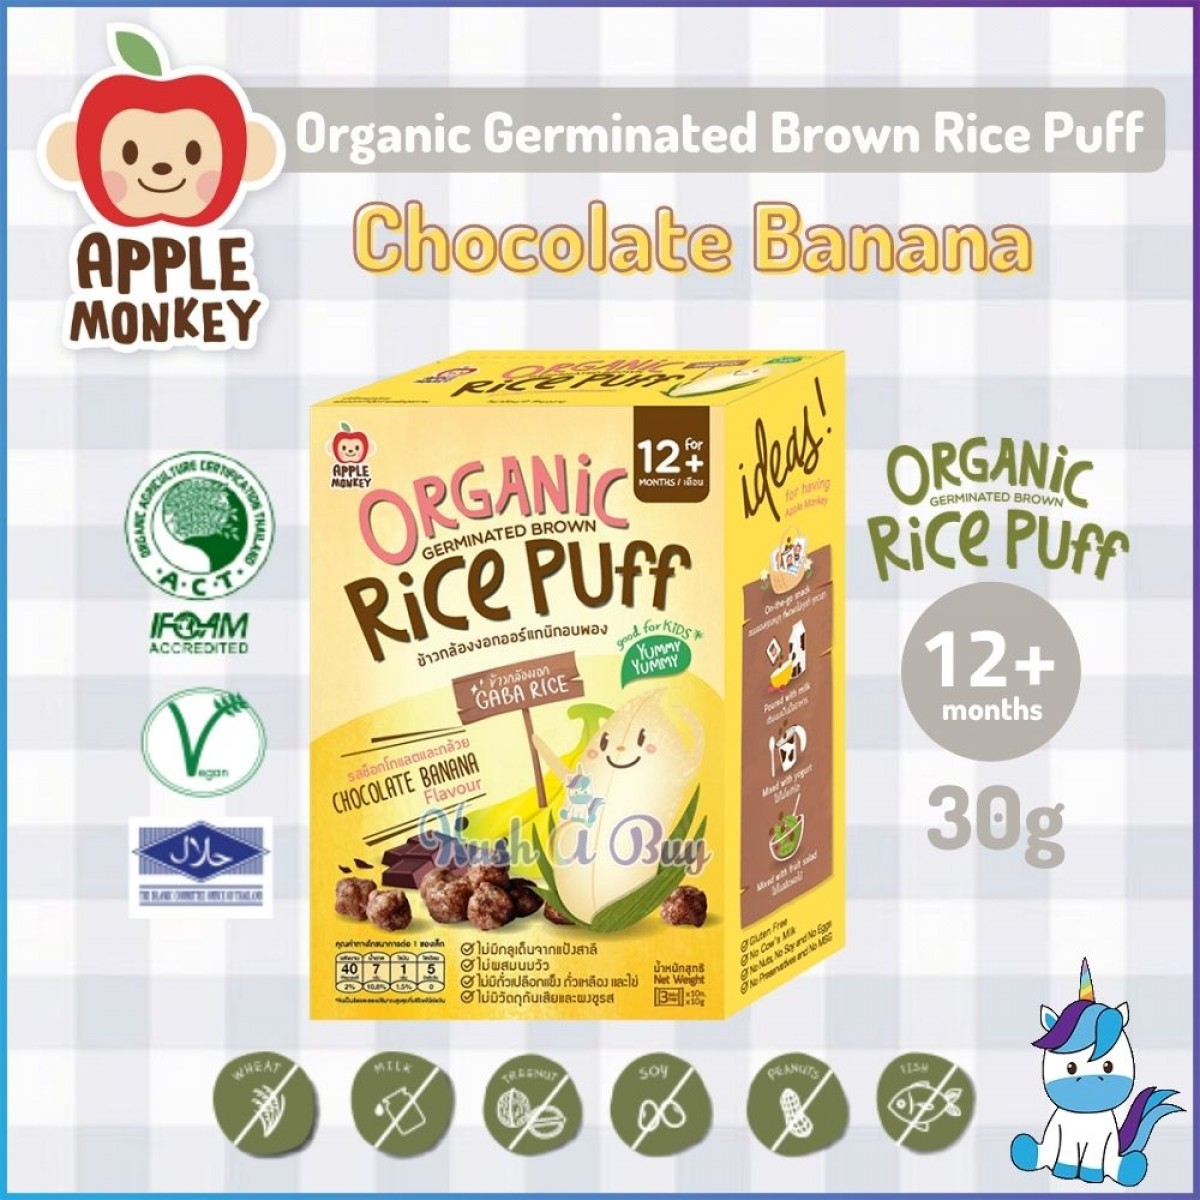 【SALES】HALAL - Apple Monkey( GLUTEN FREE) Organic Germinated Brown Rice Puffs / Cookies - Baby Snacks and Foods - 12+m